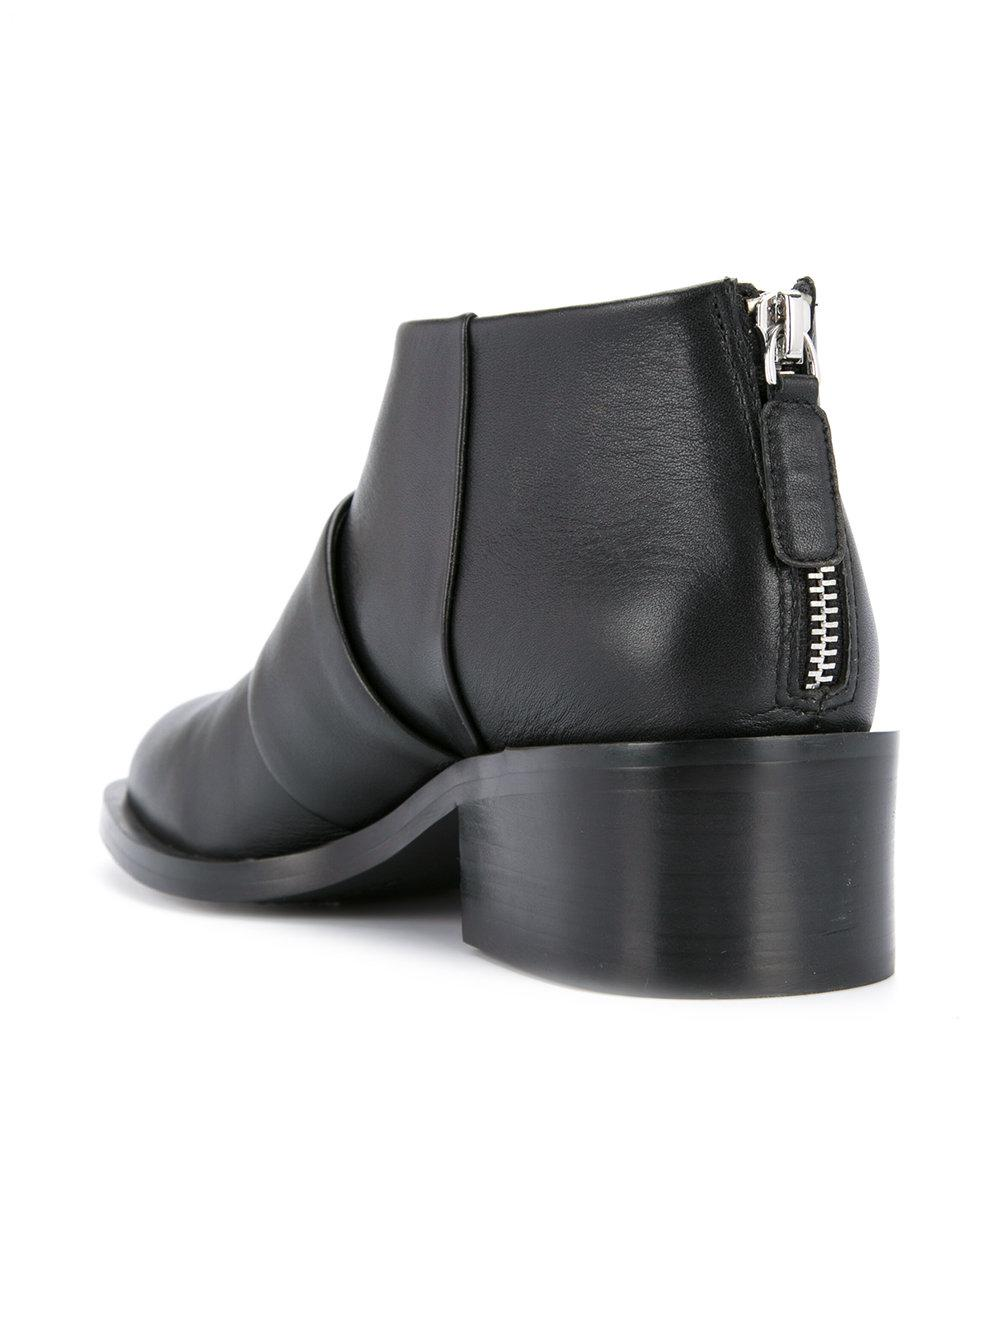 Senso Leather Dion I Boots in Black